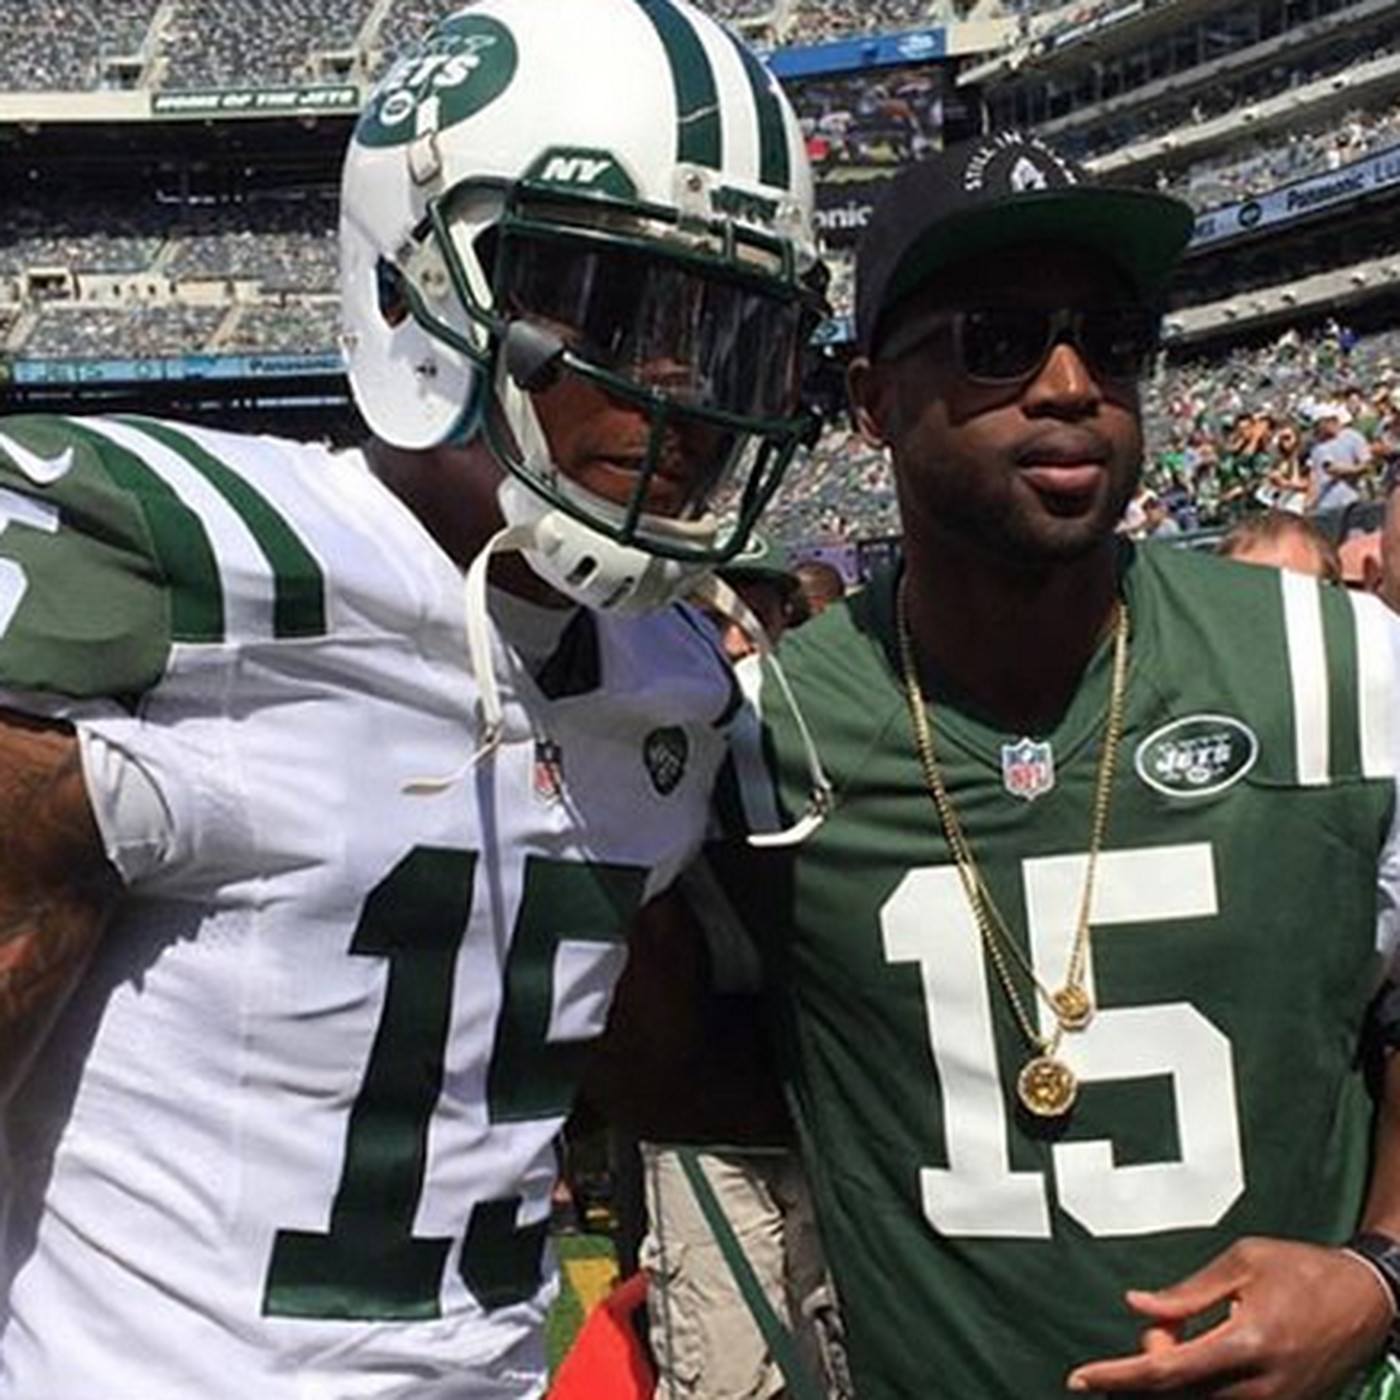 Dwyane Wade watched Jets game in Brandon Marshall jersey - Chicago ...